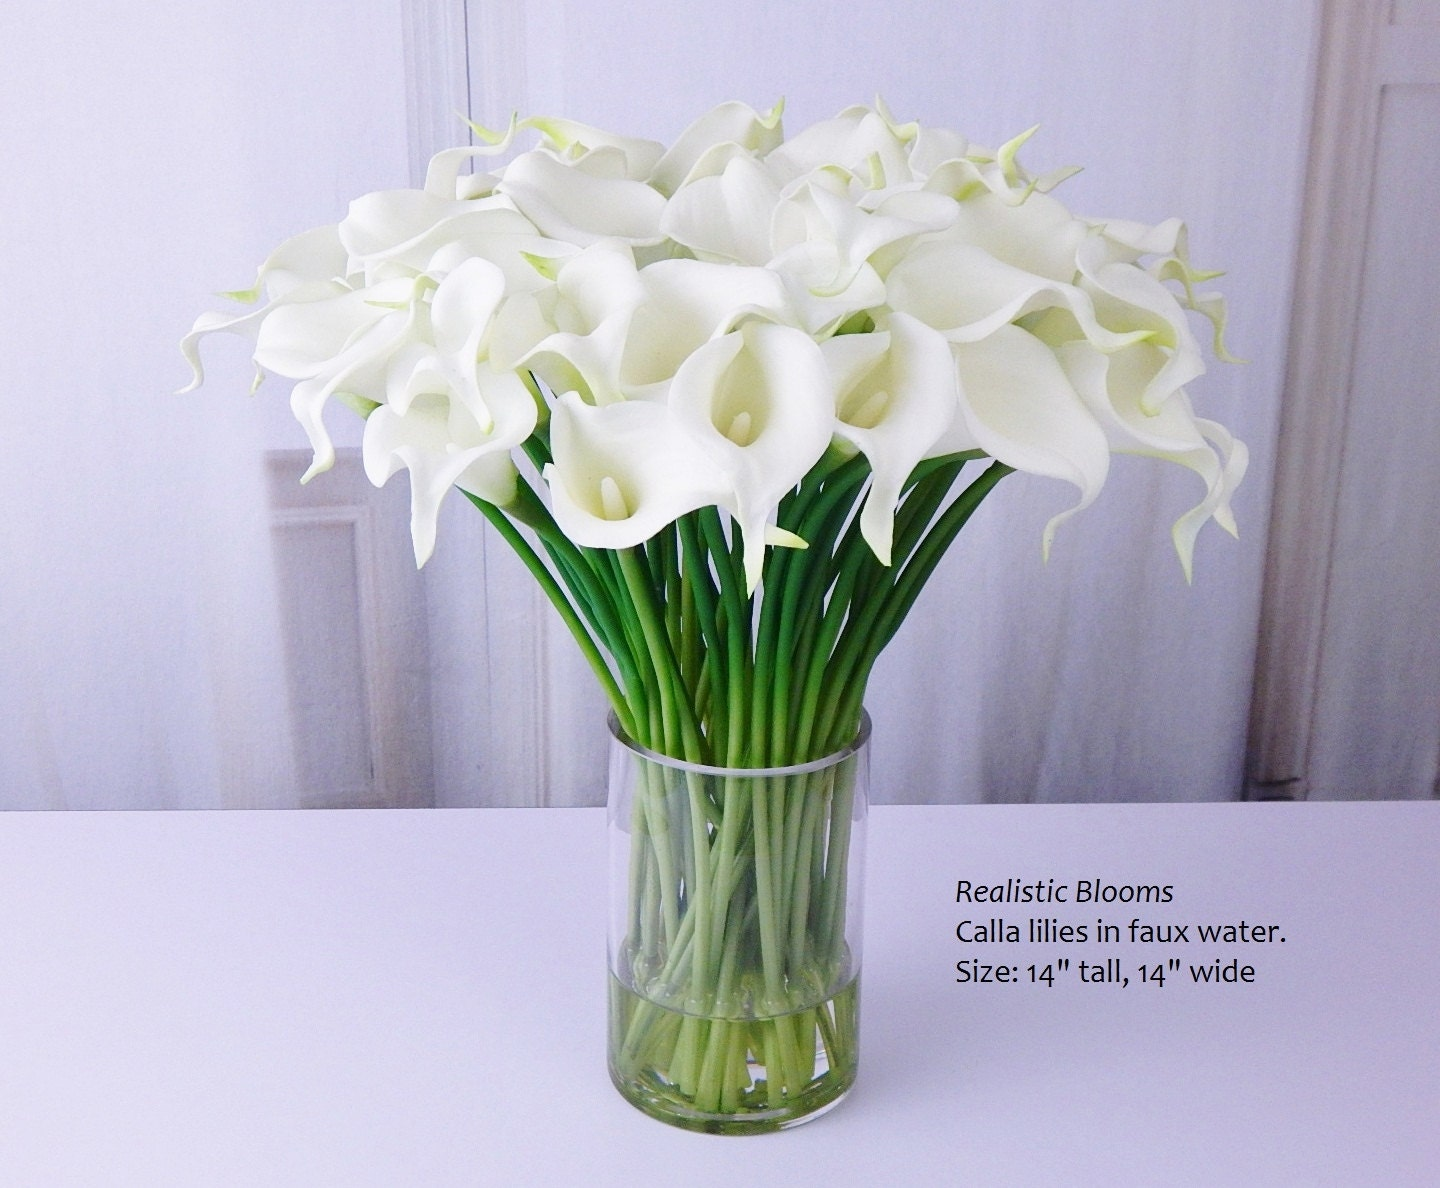 Whiteoffwhite calla lilylilies silk floral arrangement faux whiteoffwhite calla lilylilies silk floral arrangement faux water acrylic illusion real touch flowers centerpiece wedding gift izmirmasajfo Image collections